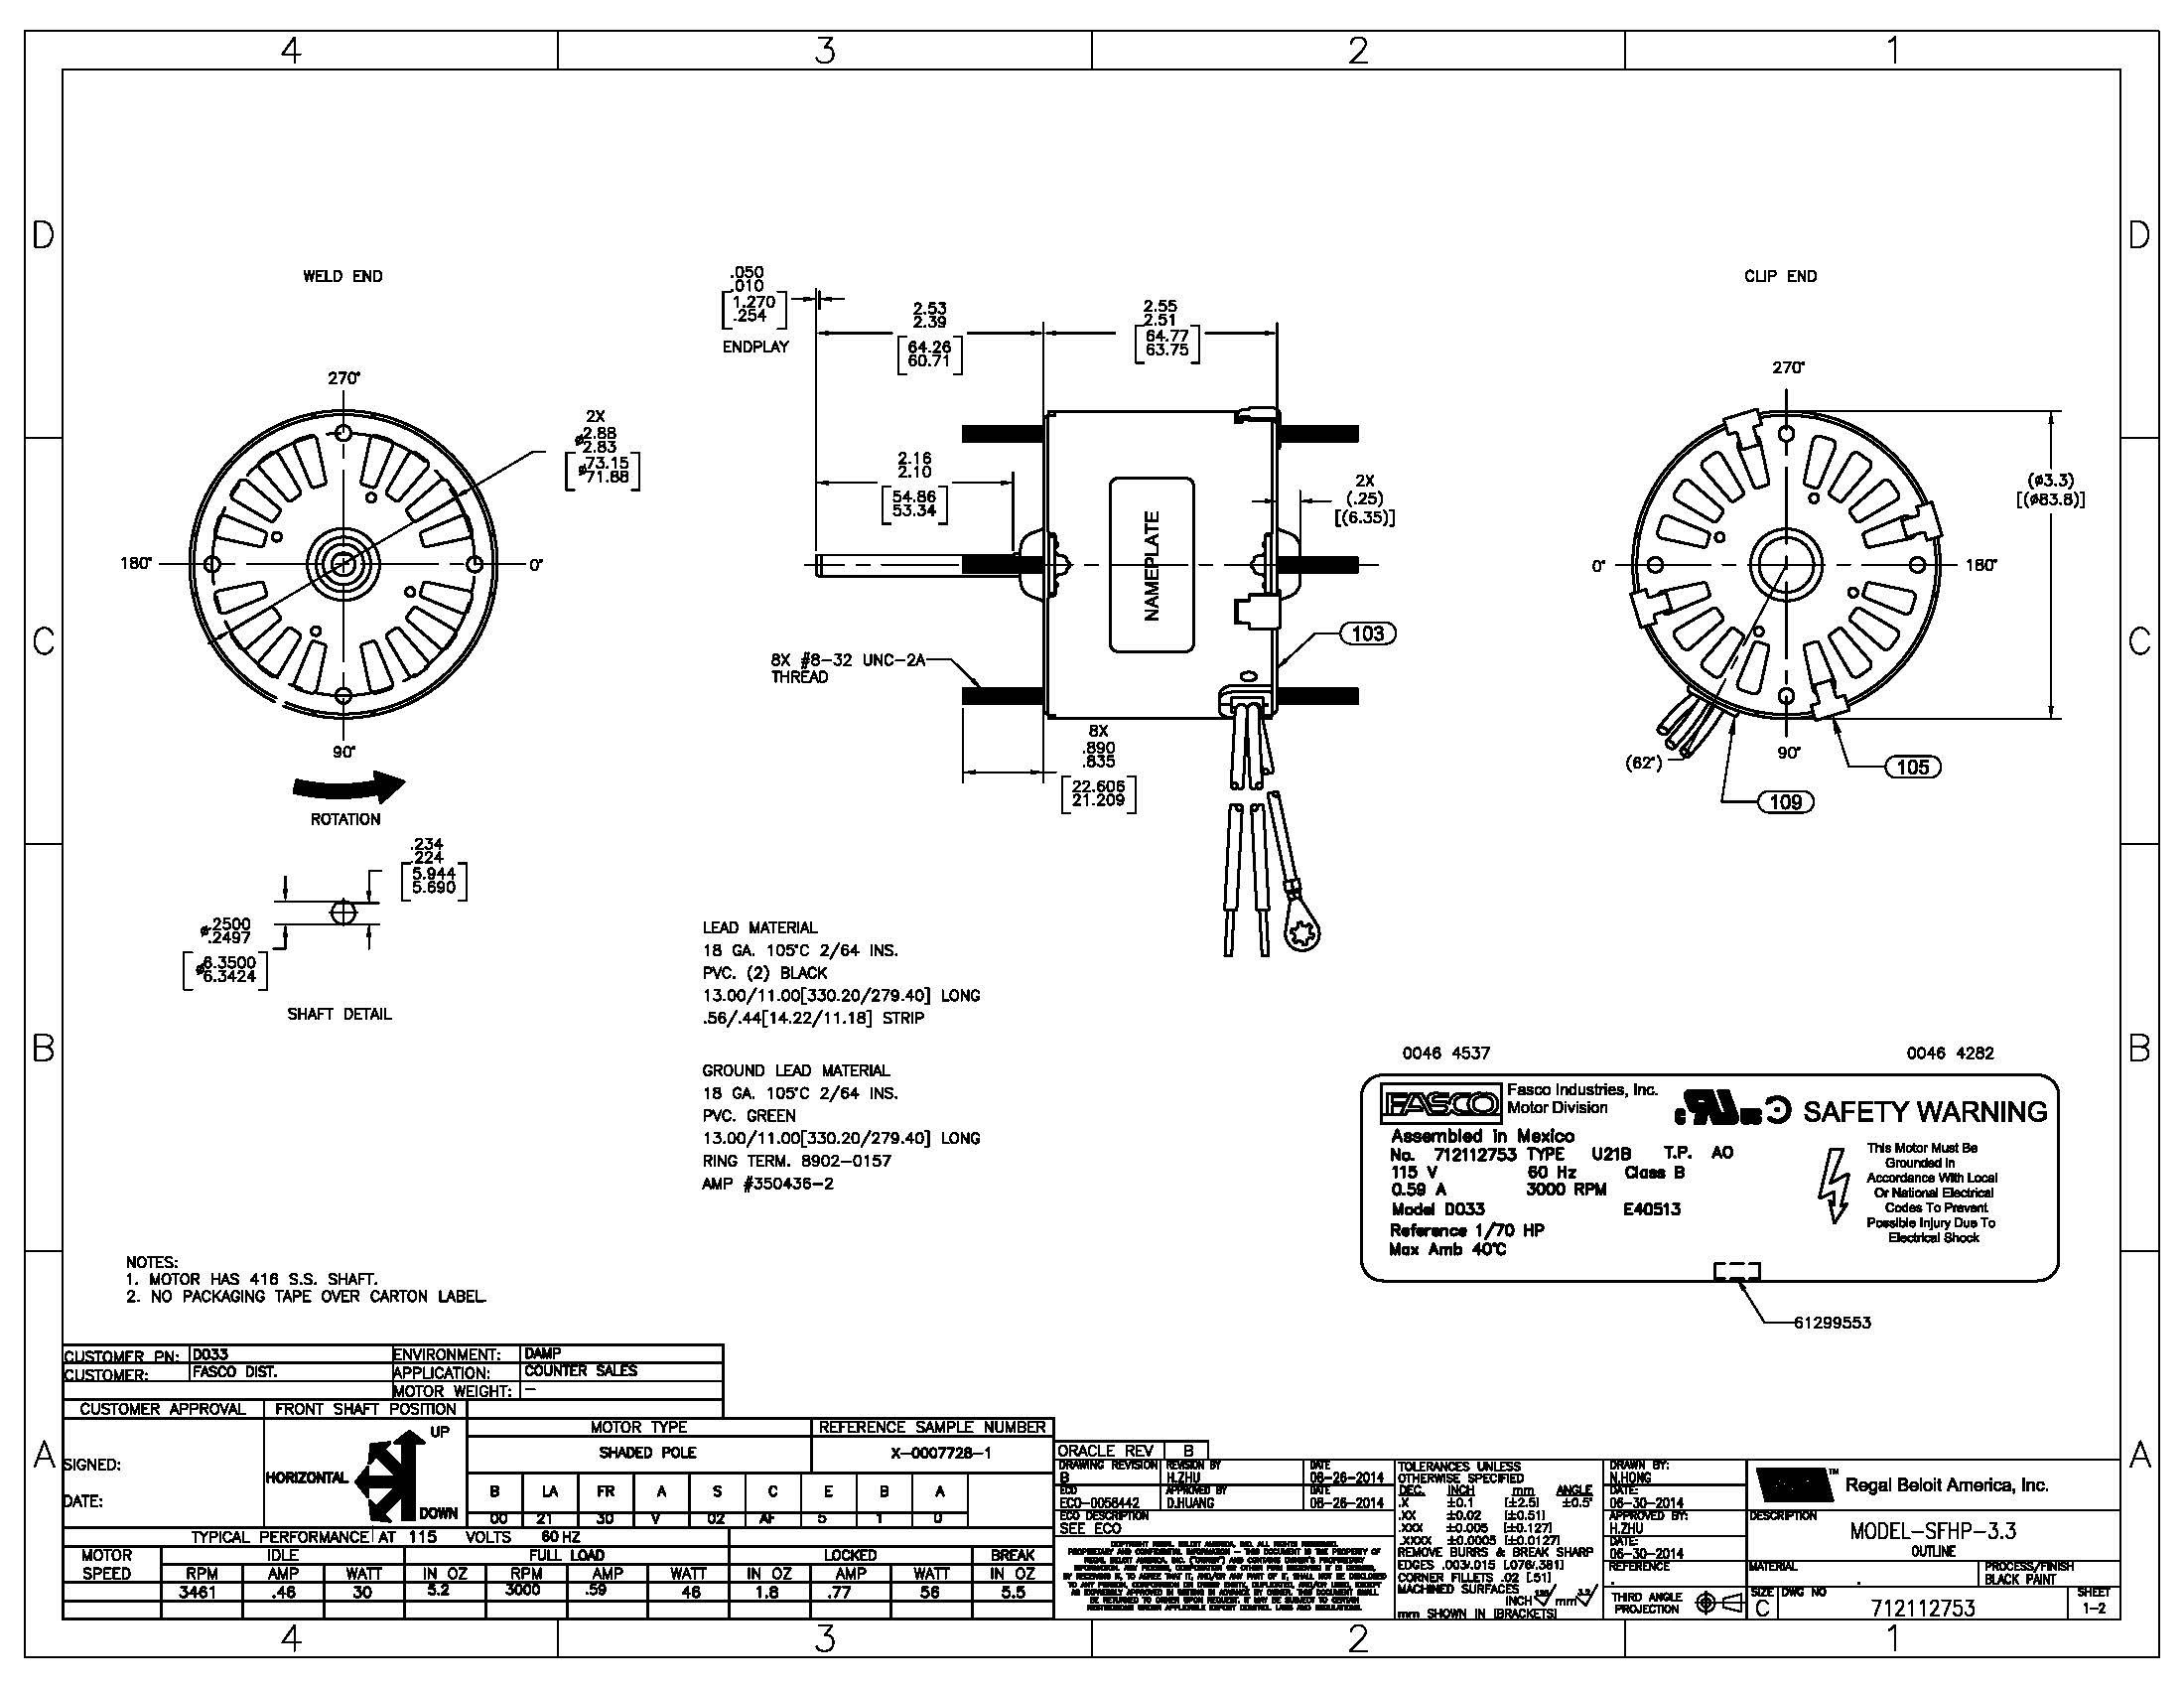 ao smith pool pump motor wiring diagram Collection-Wiring Diagram Pool Pump Motor Valid Pentair Pool Pump Wiring Diagram Awesome Ao Smith 2 Speed 7-r